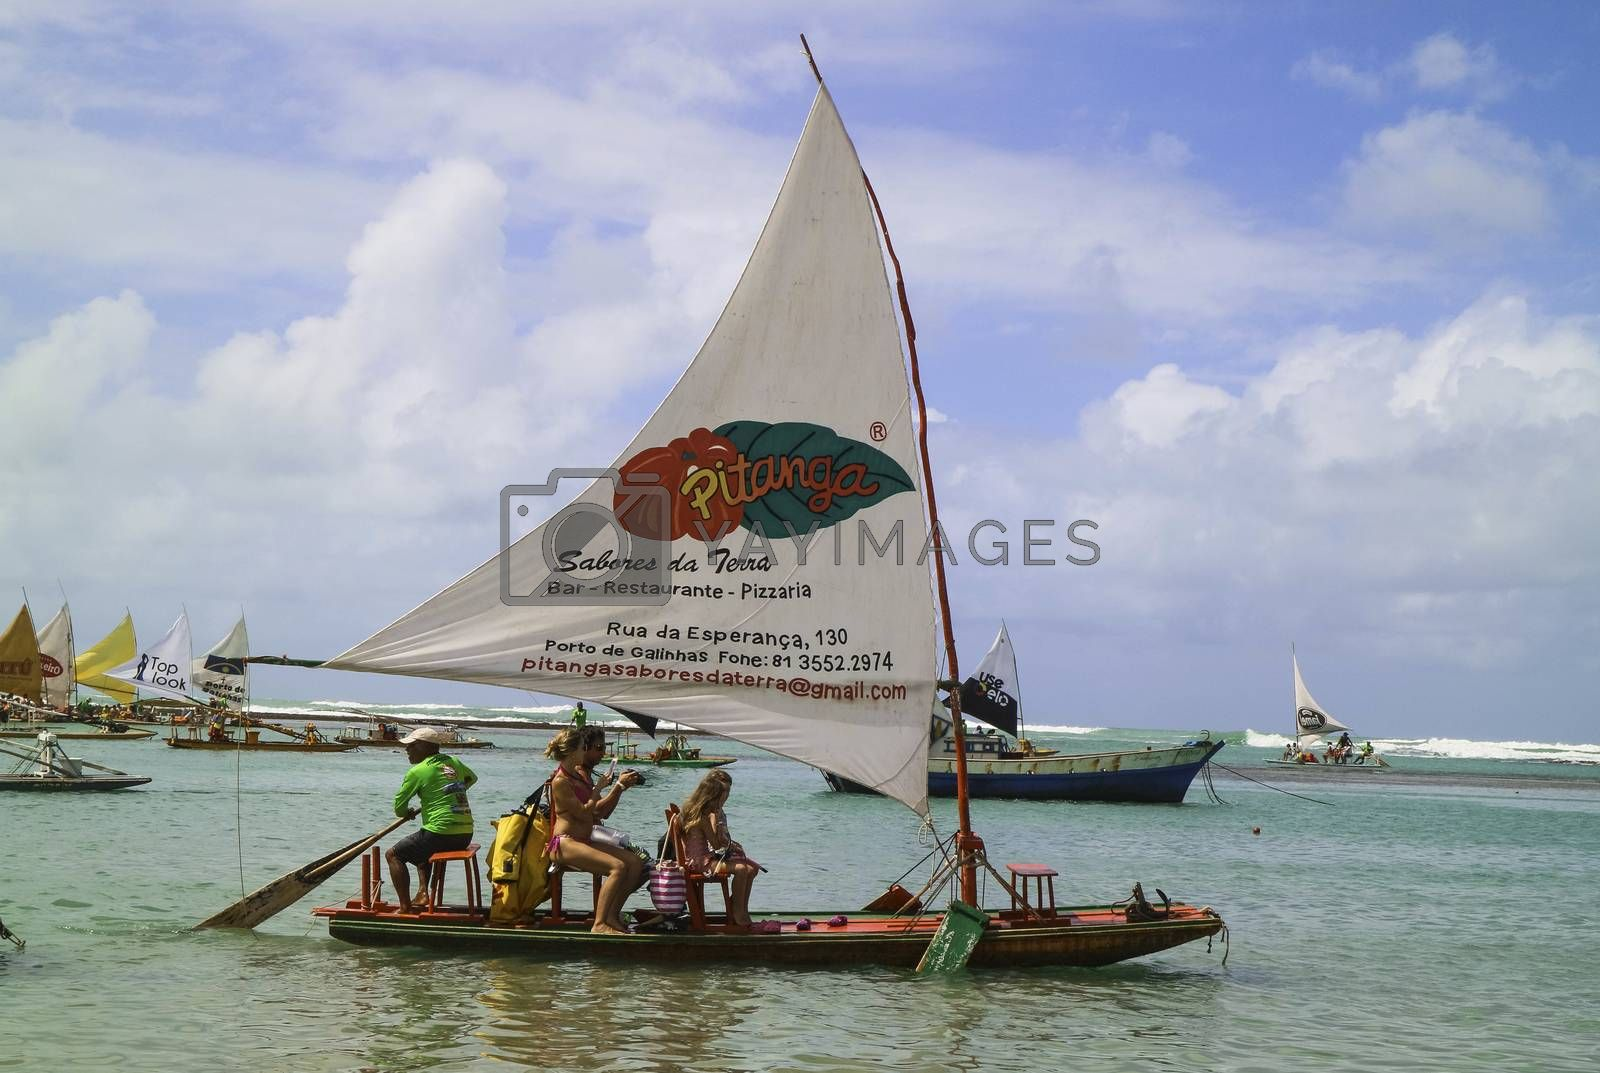 Pernambuco, Brazil July 6, 2016: An unidentified group of people in Chicken Beach with typical sail boats in Ipojuca City near barrier reef, northeast Brazil